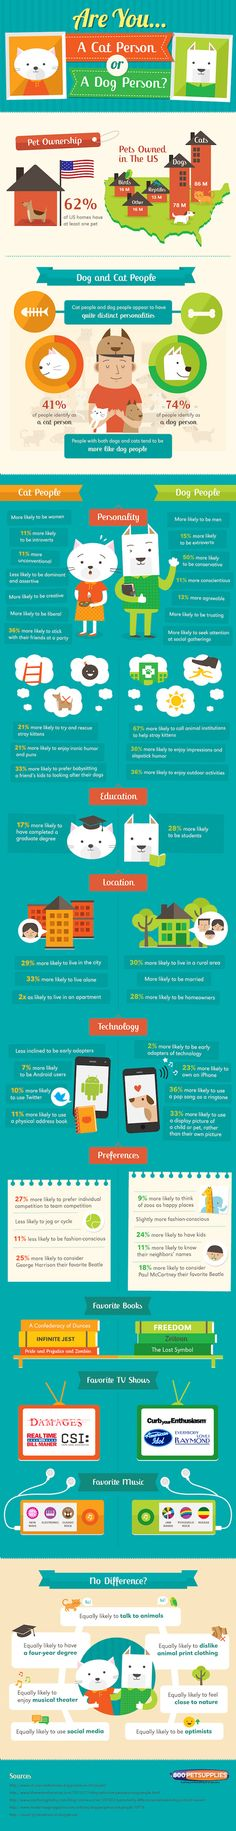 Are you a cat or a dog person? | Infographic | Creative Bloq